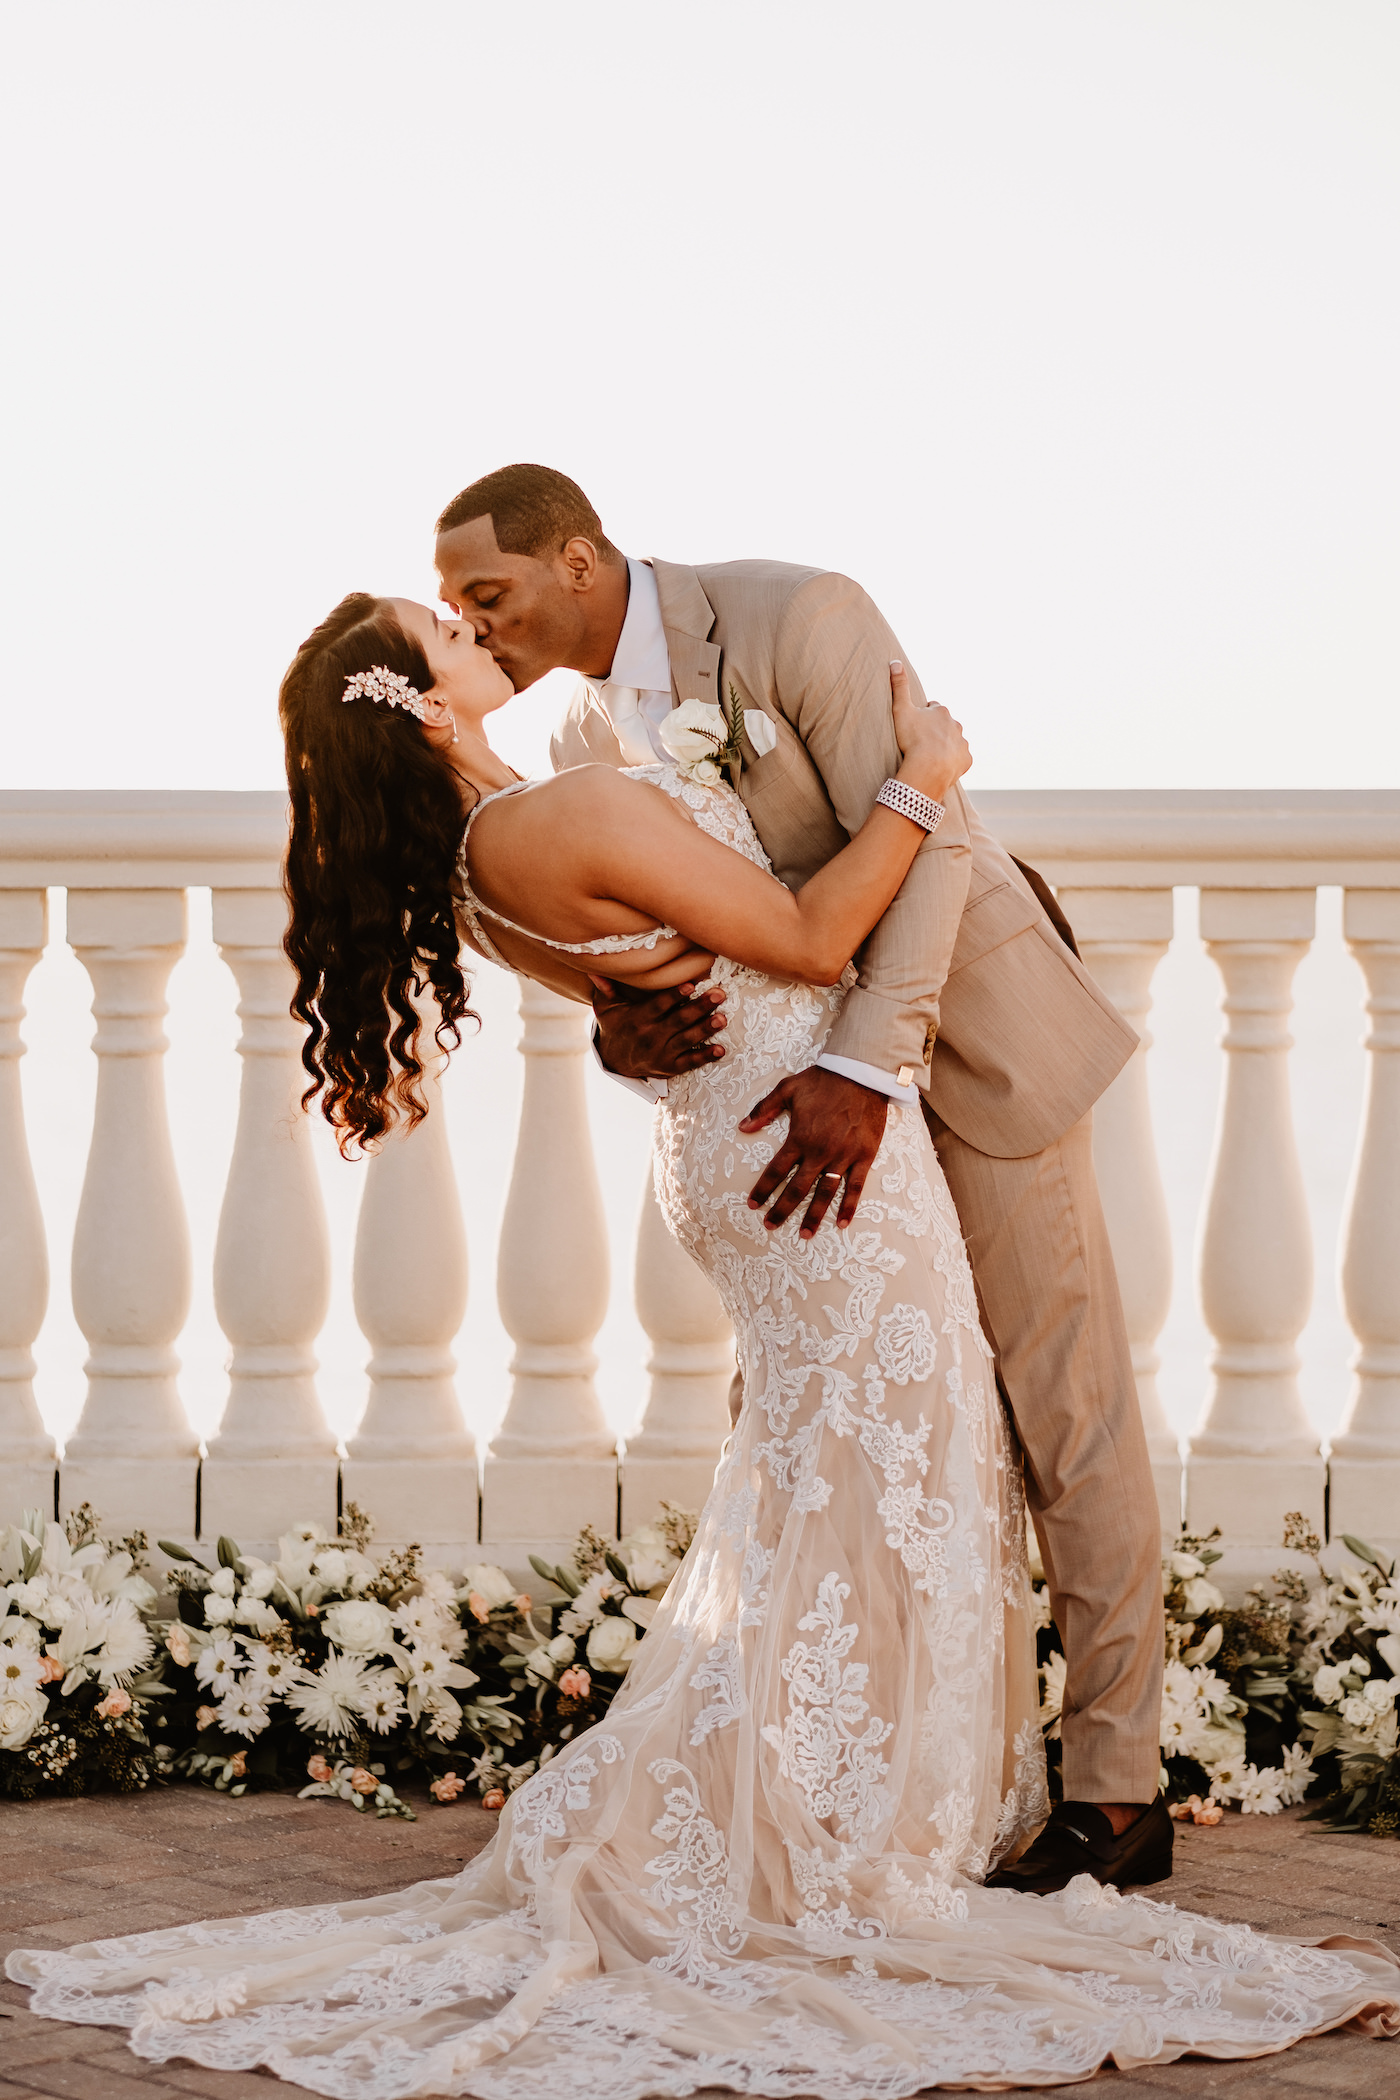 Bride and Groom First Kiss at Clearwater Wedding Venue Hyatt Regency Clearwater Beach Hotel   Outdoor Rooftop Waterfront Wedding Portrait   Champagne Lace Sheath Illusion Neck Bridal Gown with Criss Cross Back Straps   Groom Khaki Tan Suit